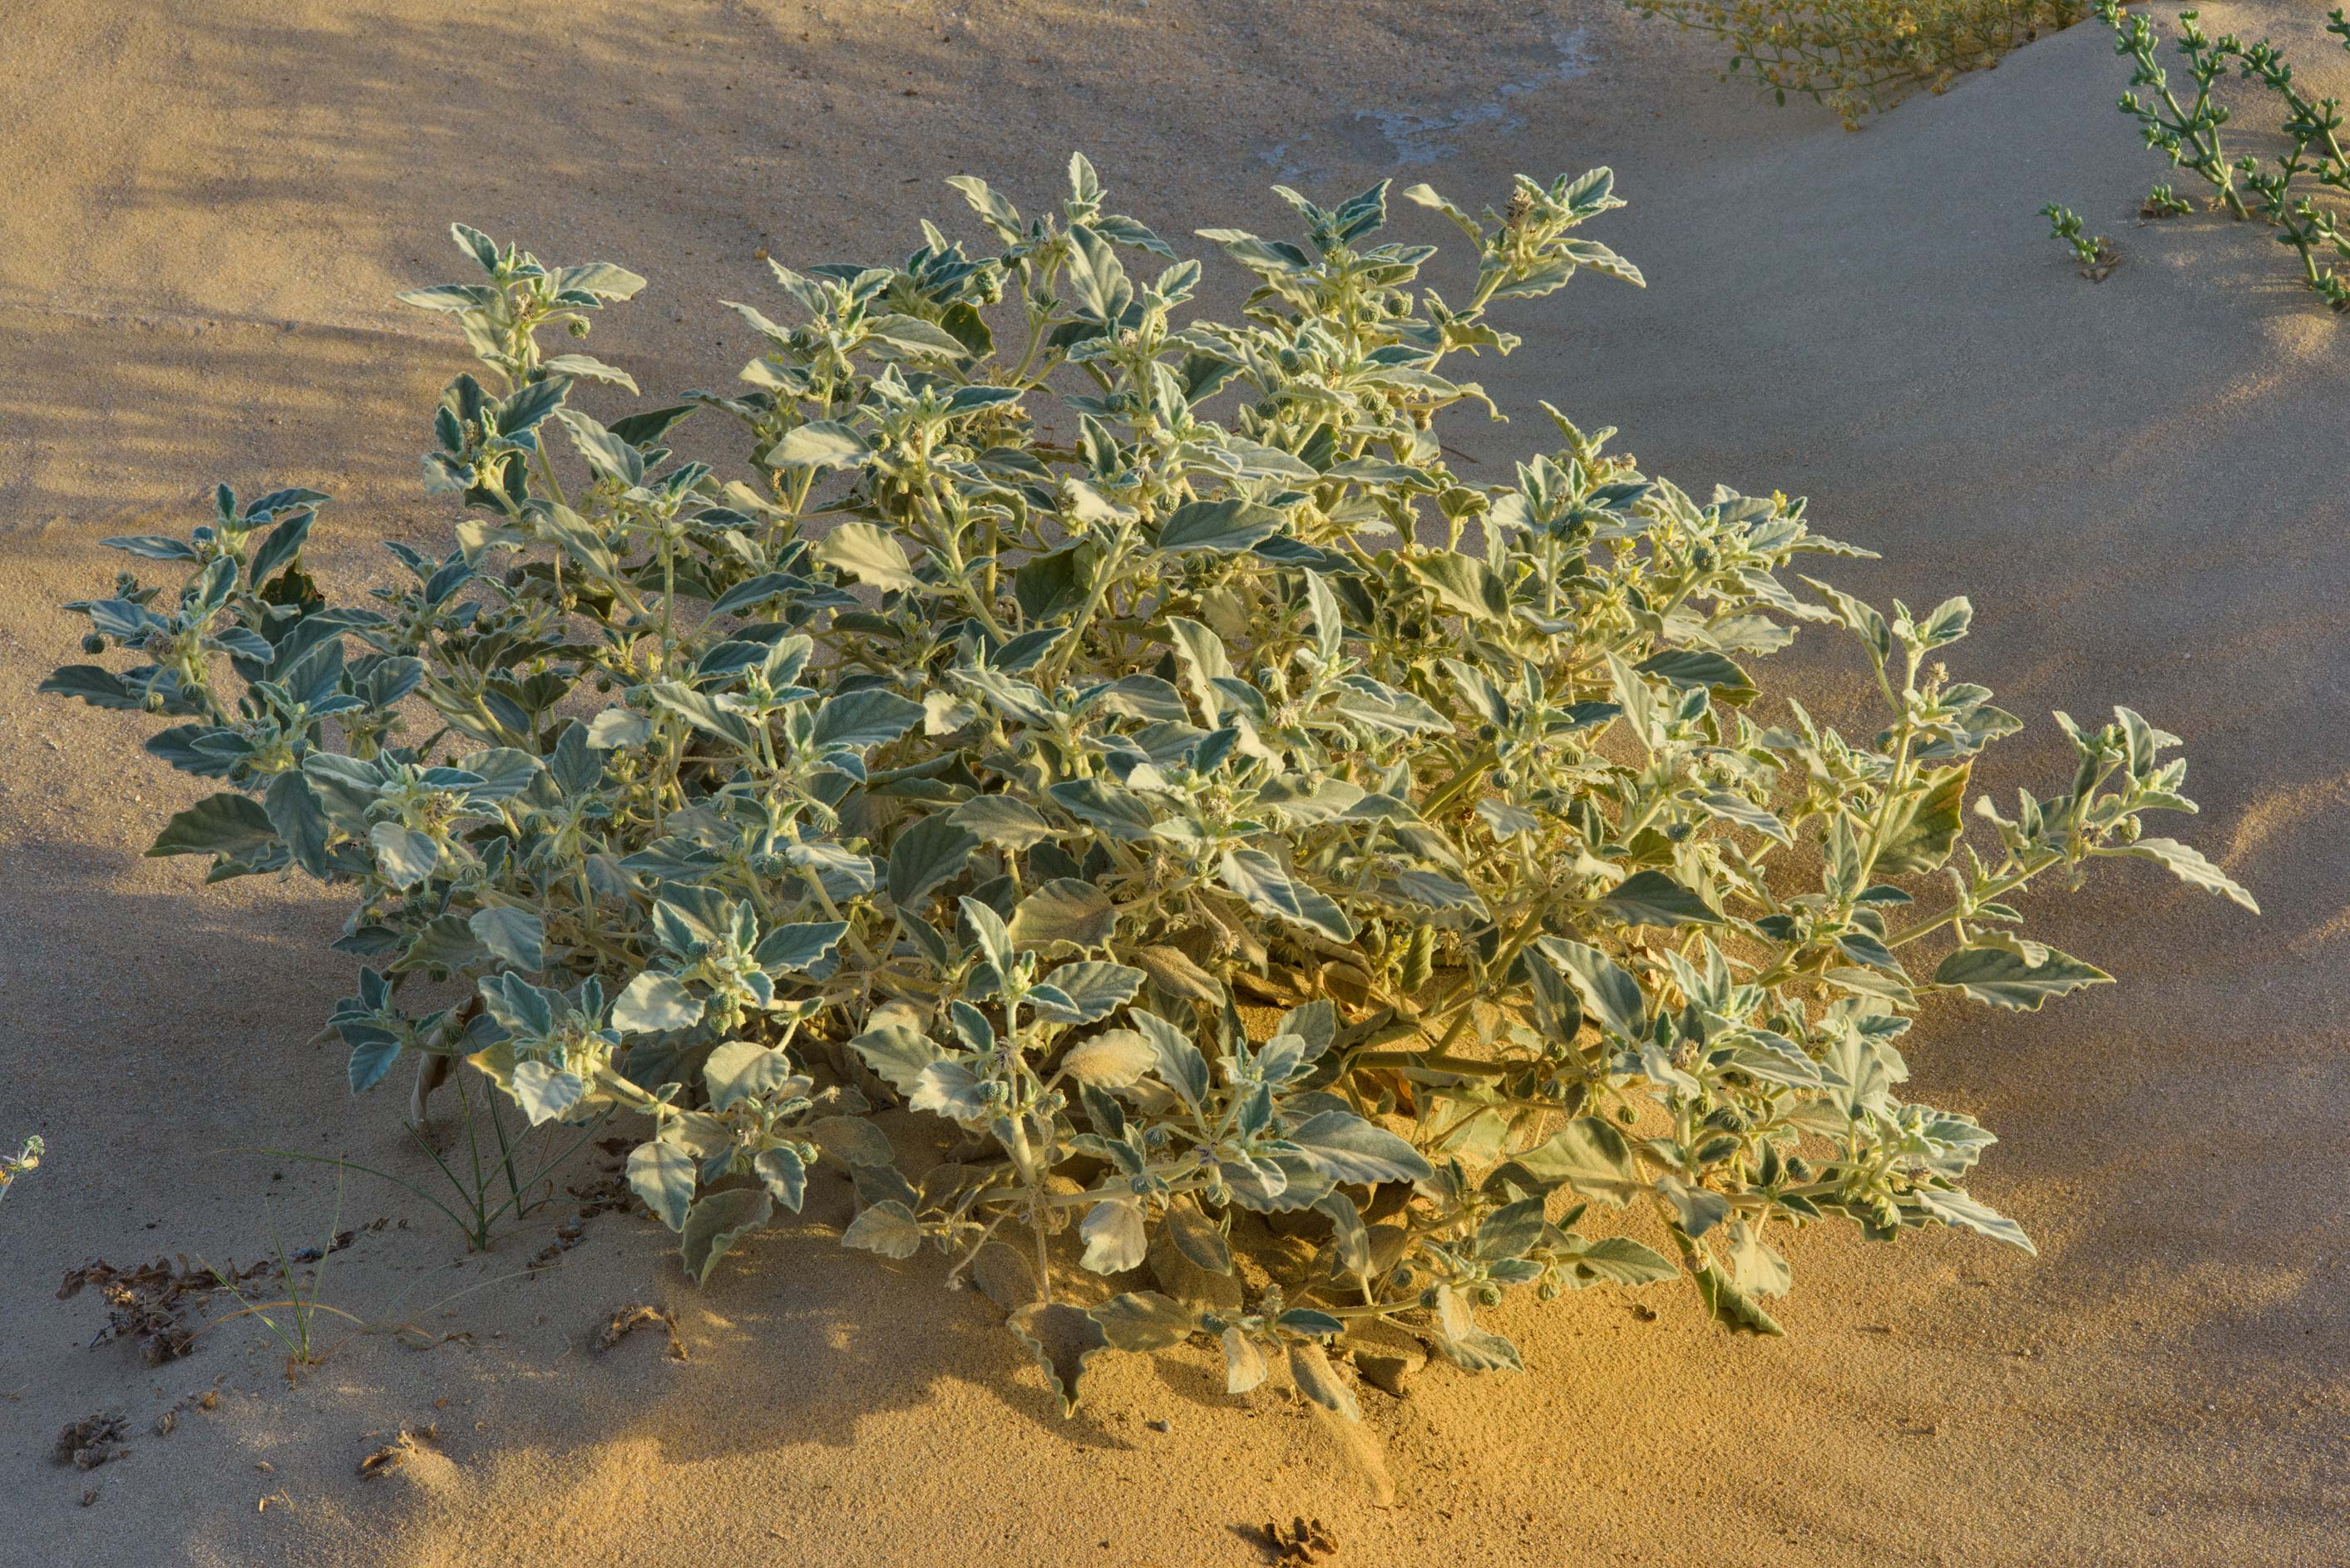 Woolly plant of dyer's croton (giradol...Khashm an Nakhsh). South-western Qatar